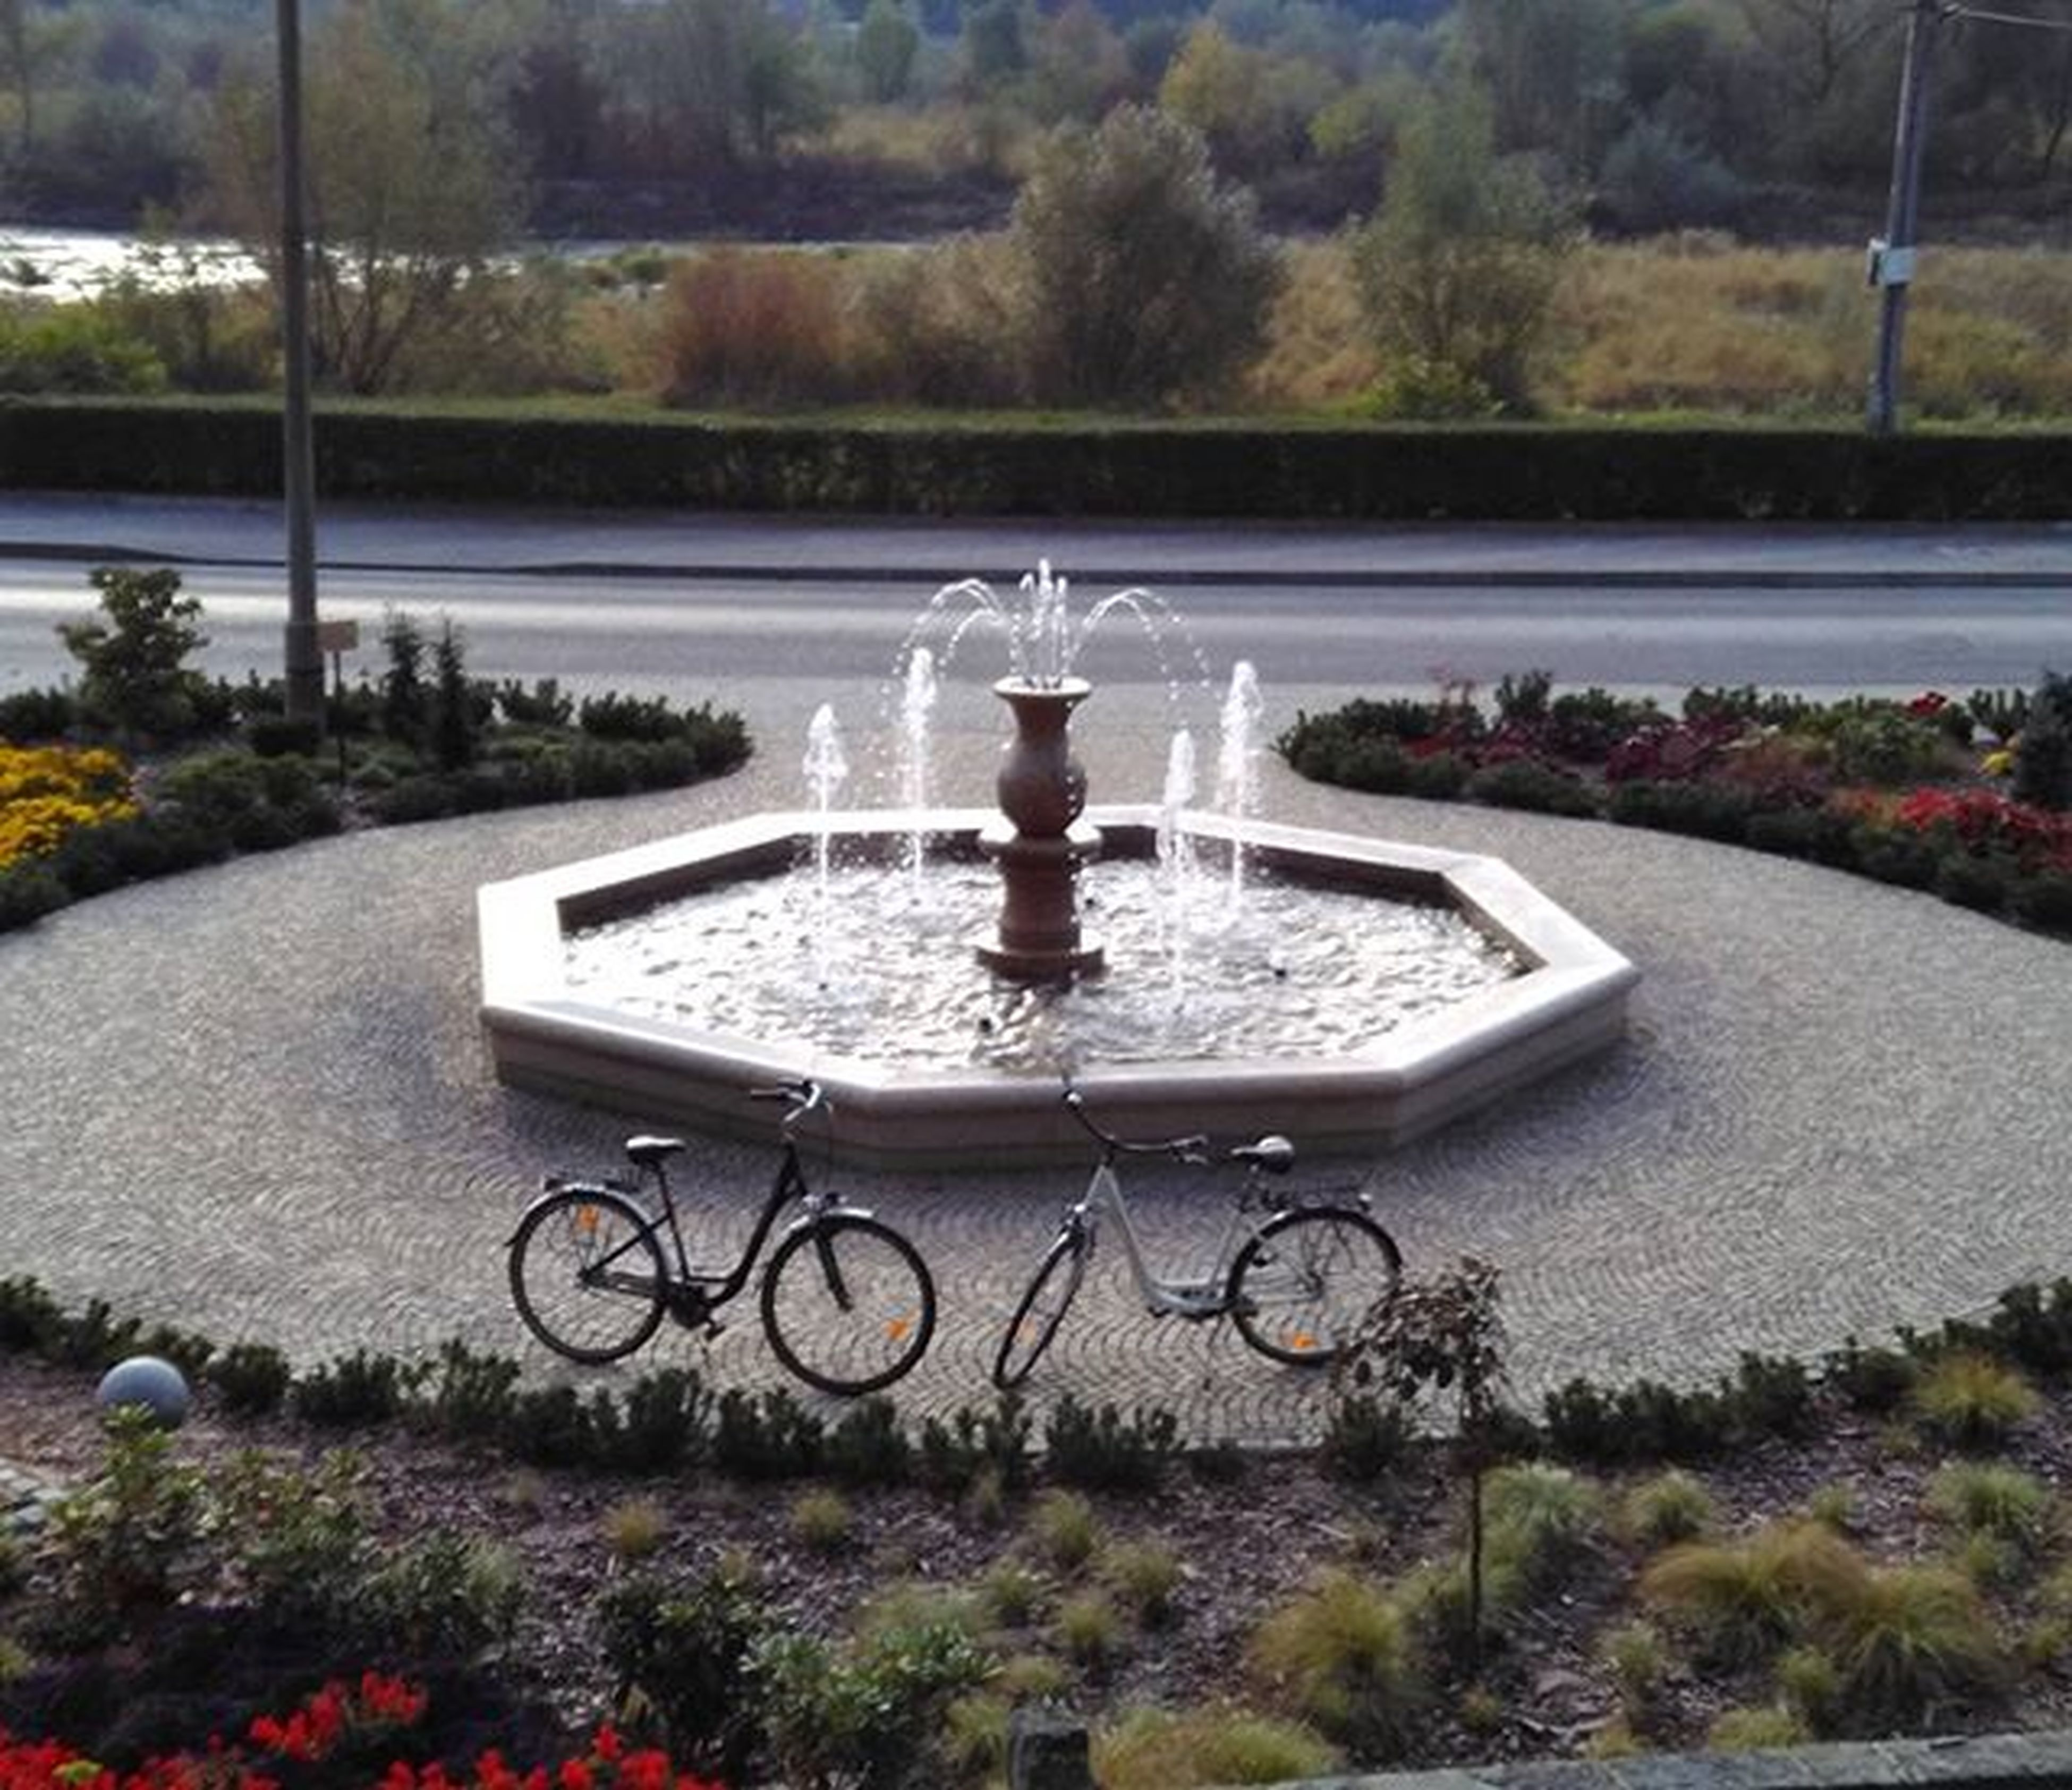 bicycle, tree, transportation, mode of transport, land vehicle, park - man made space, street, water, flower, road, growth, plant, day, nature, outdoors, grass, footpath, fountain